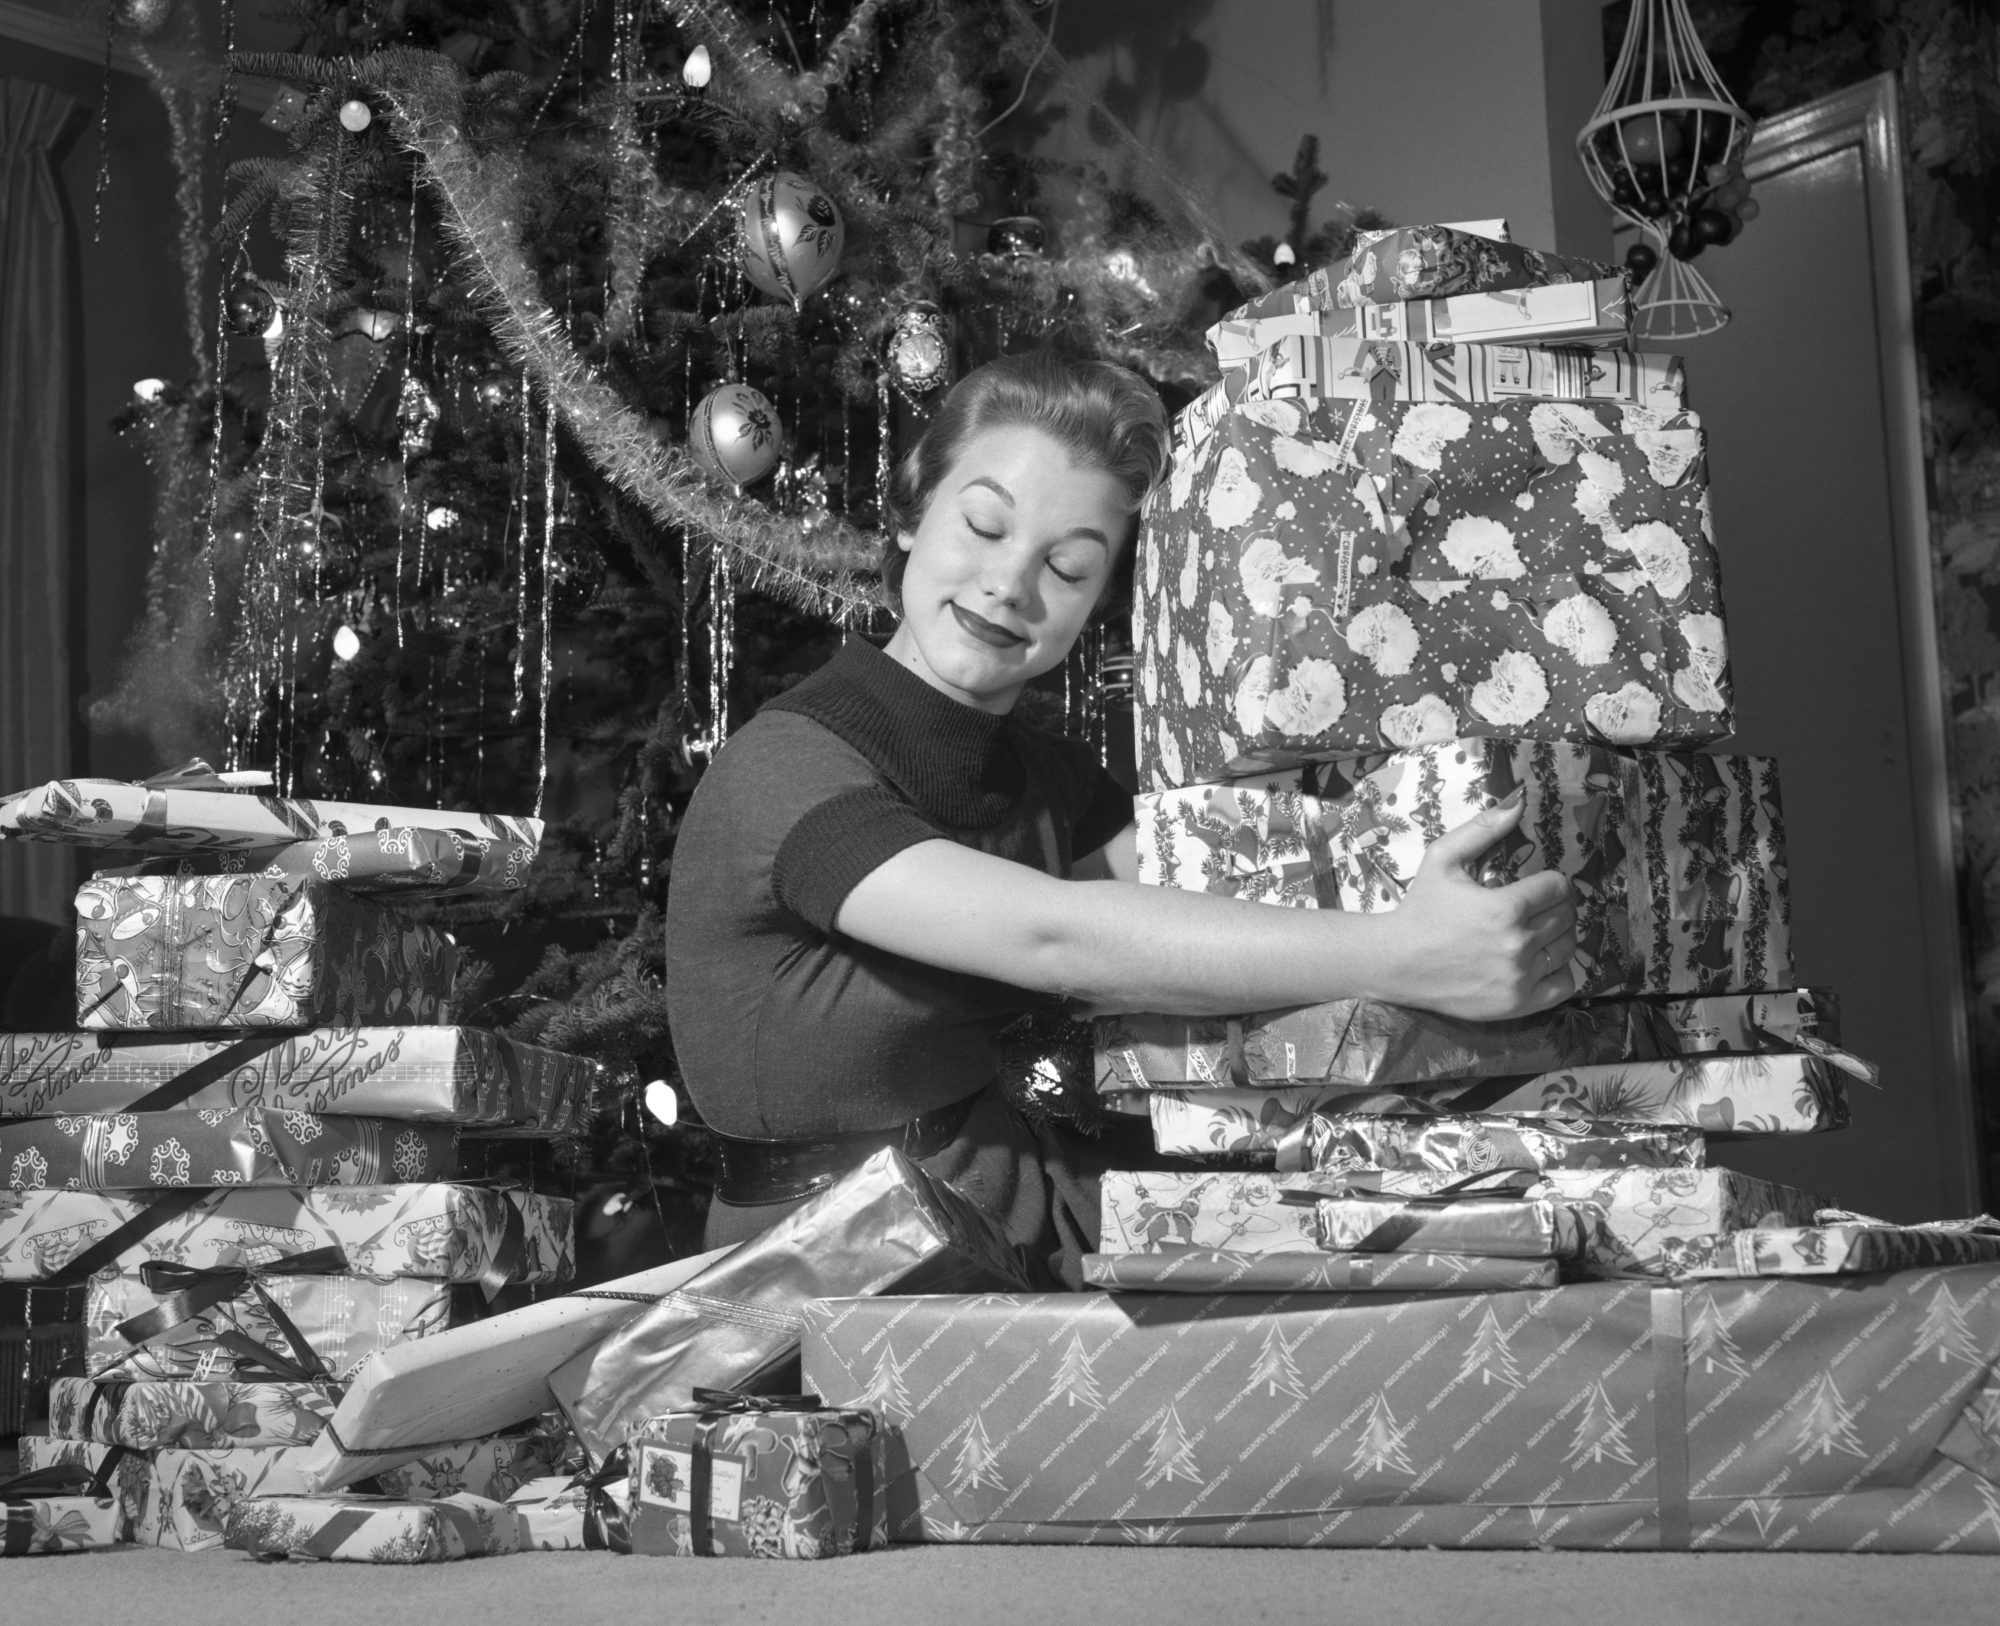 Woman Hugging Pile of Presents